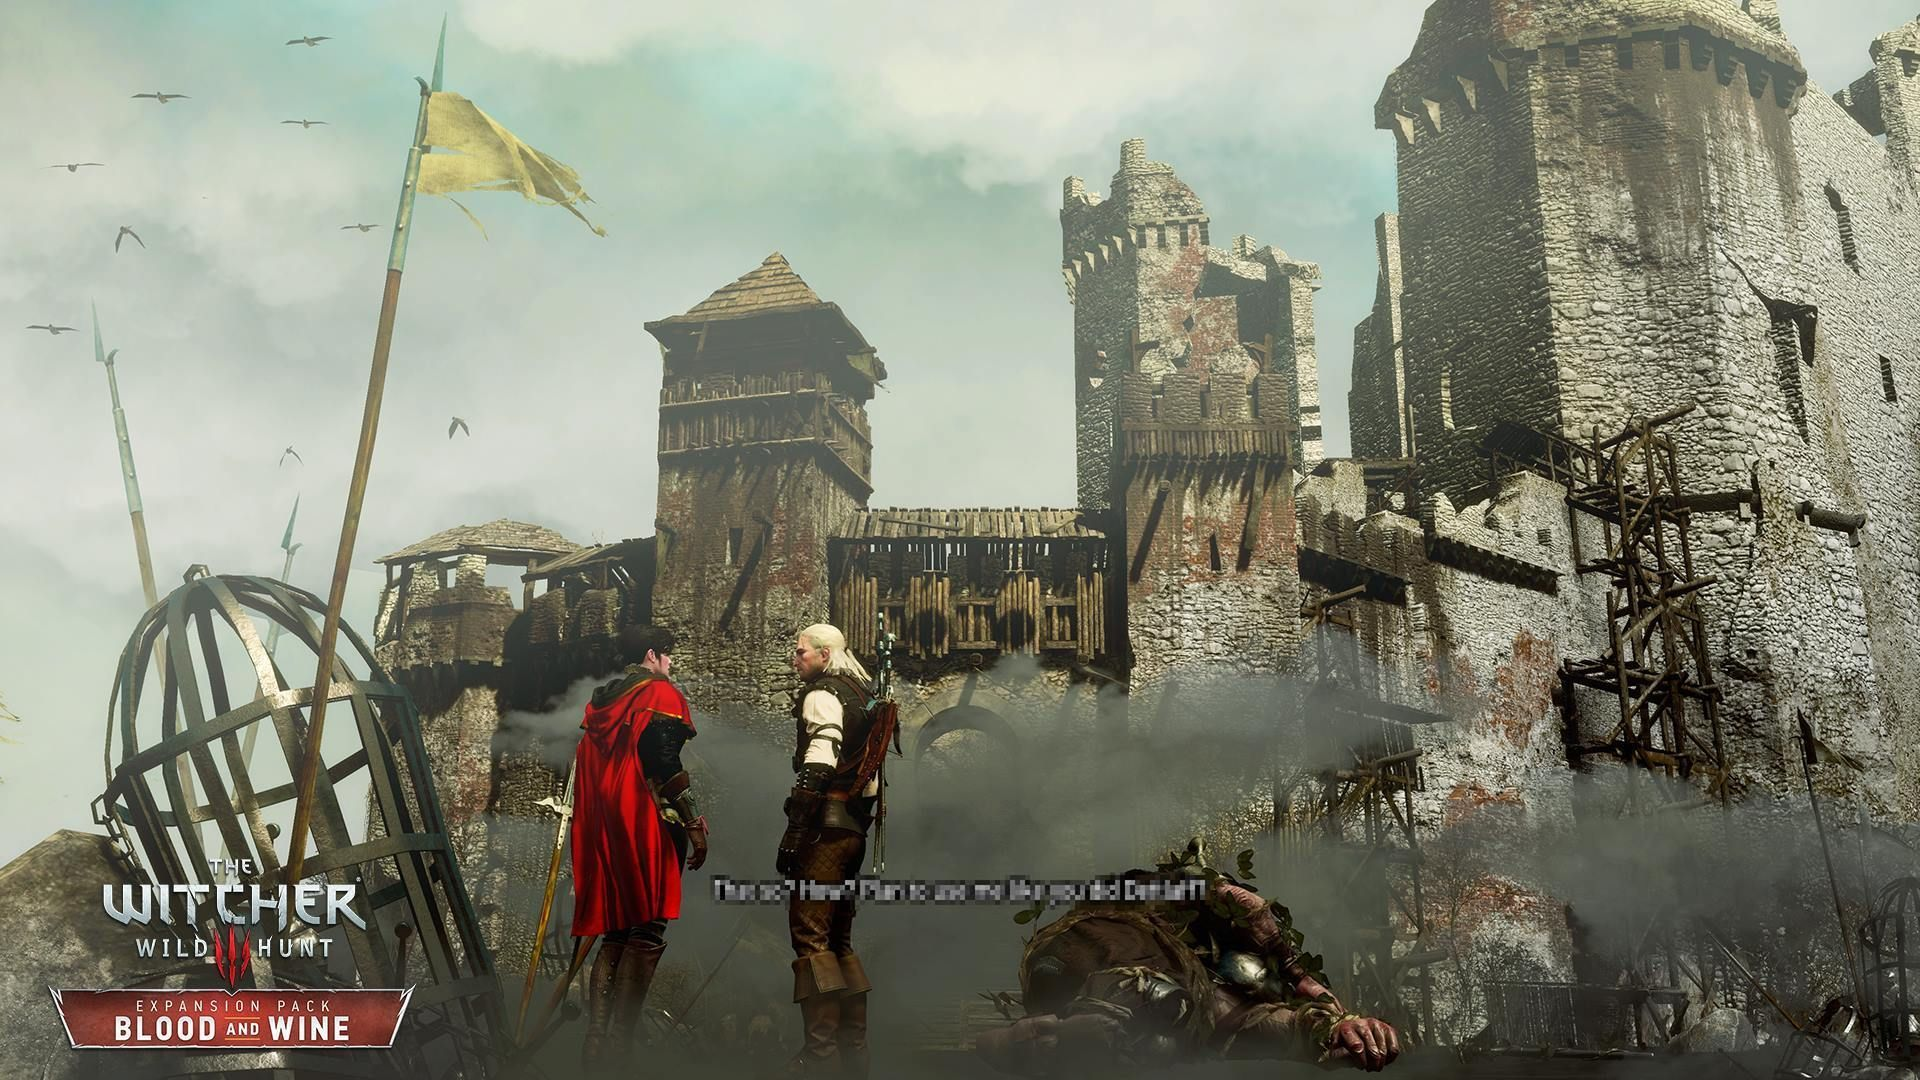 The Witcher Screenshot Wallpapers Album on